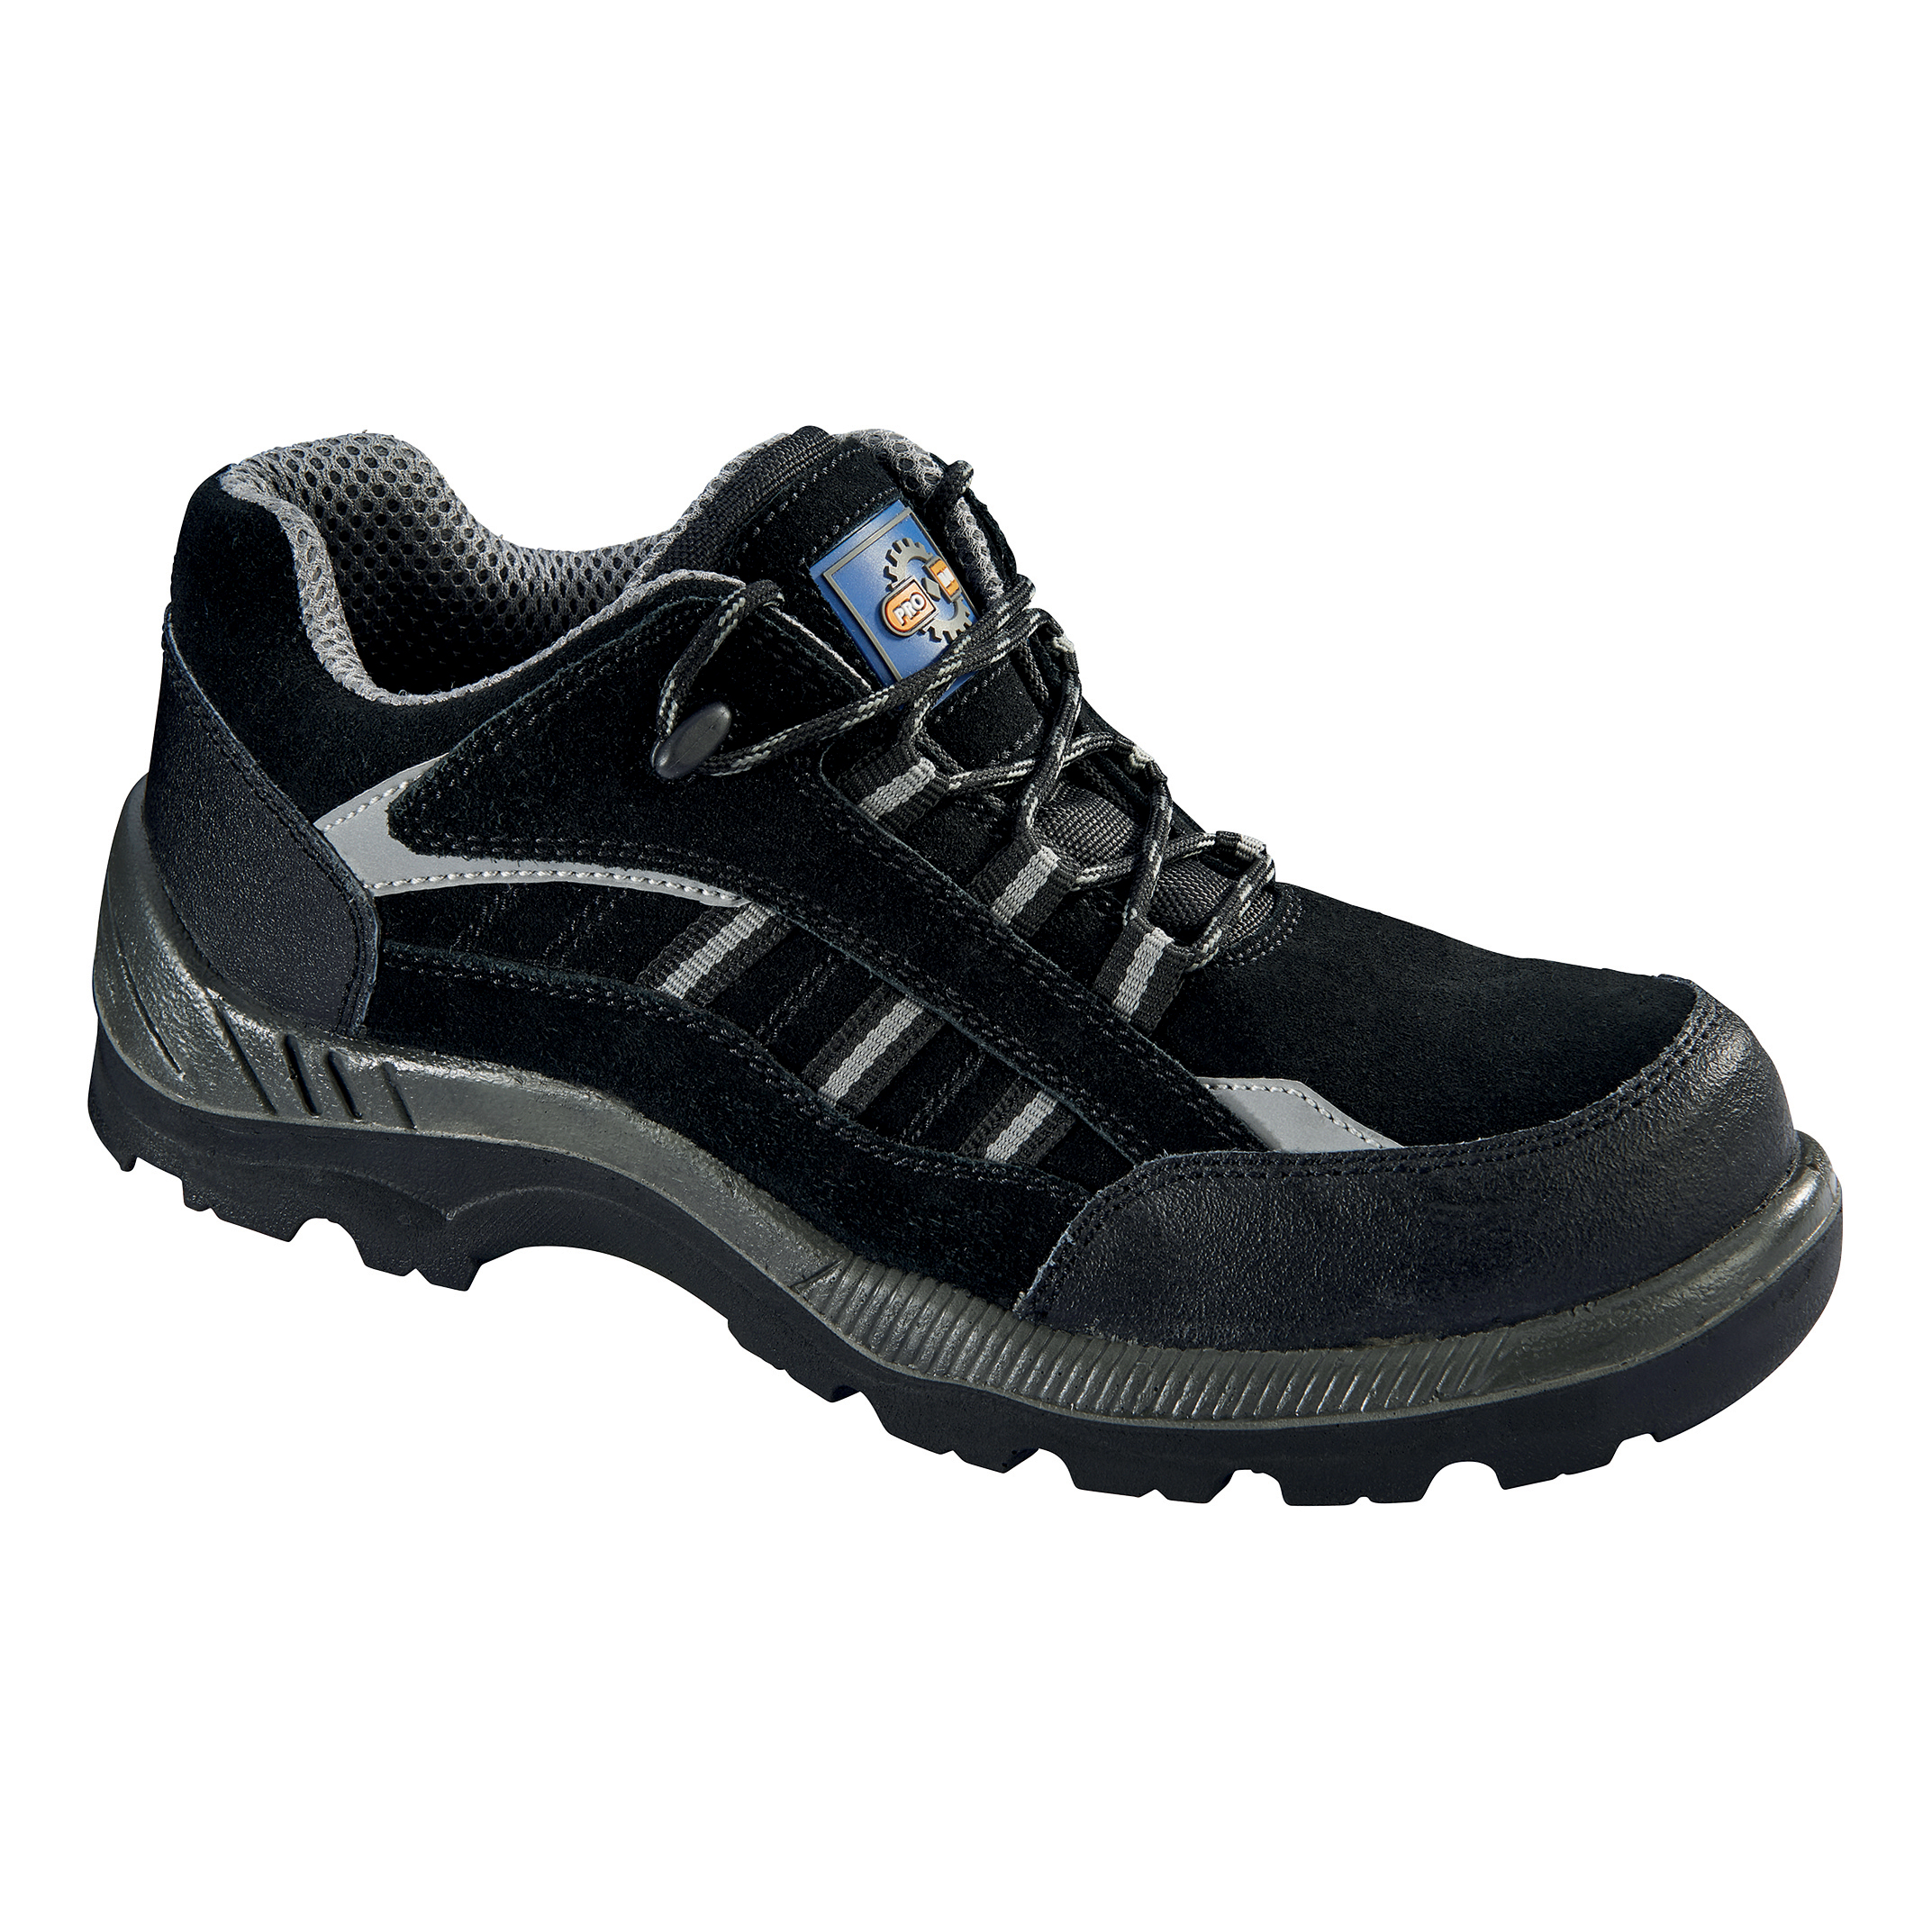 Safety shoes Rockfall ProMan Trainer Suede Fibreglass Toecap Black Size 4 Ref PM4040 4